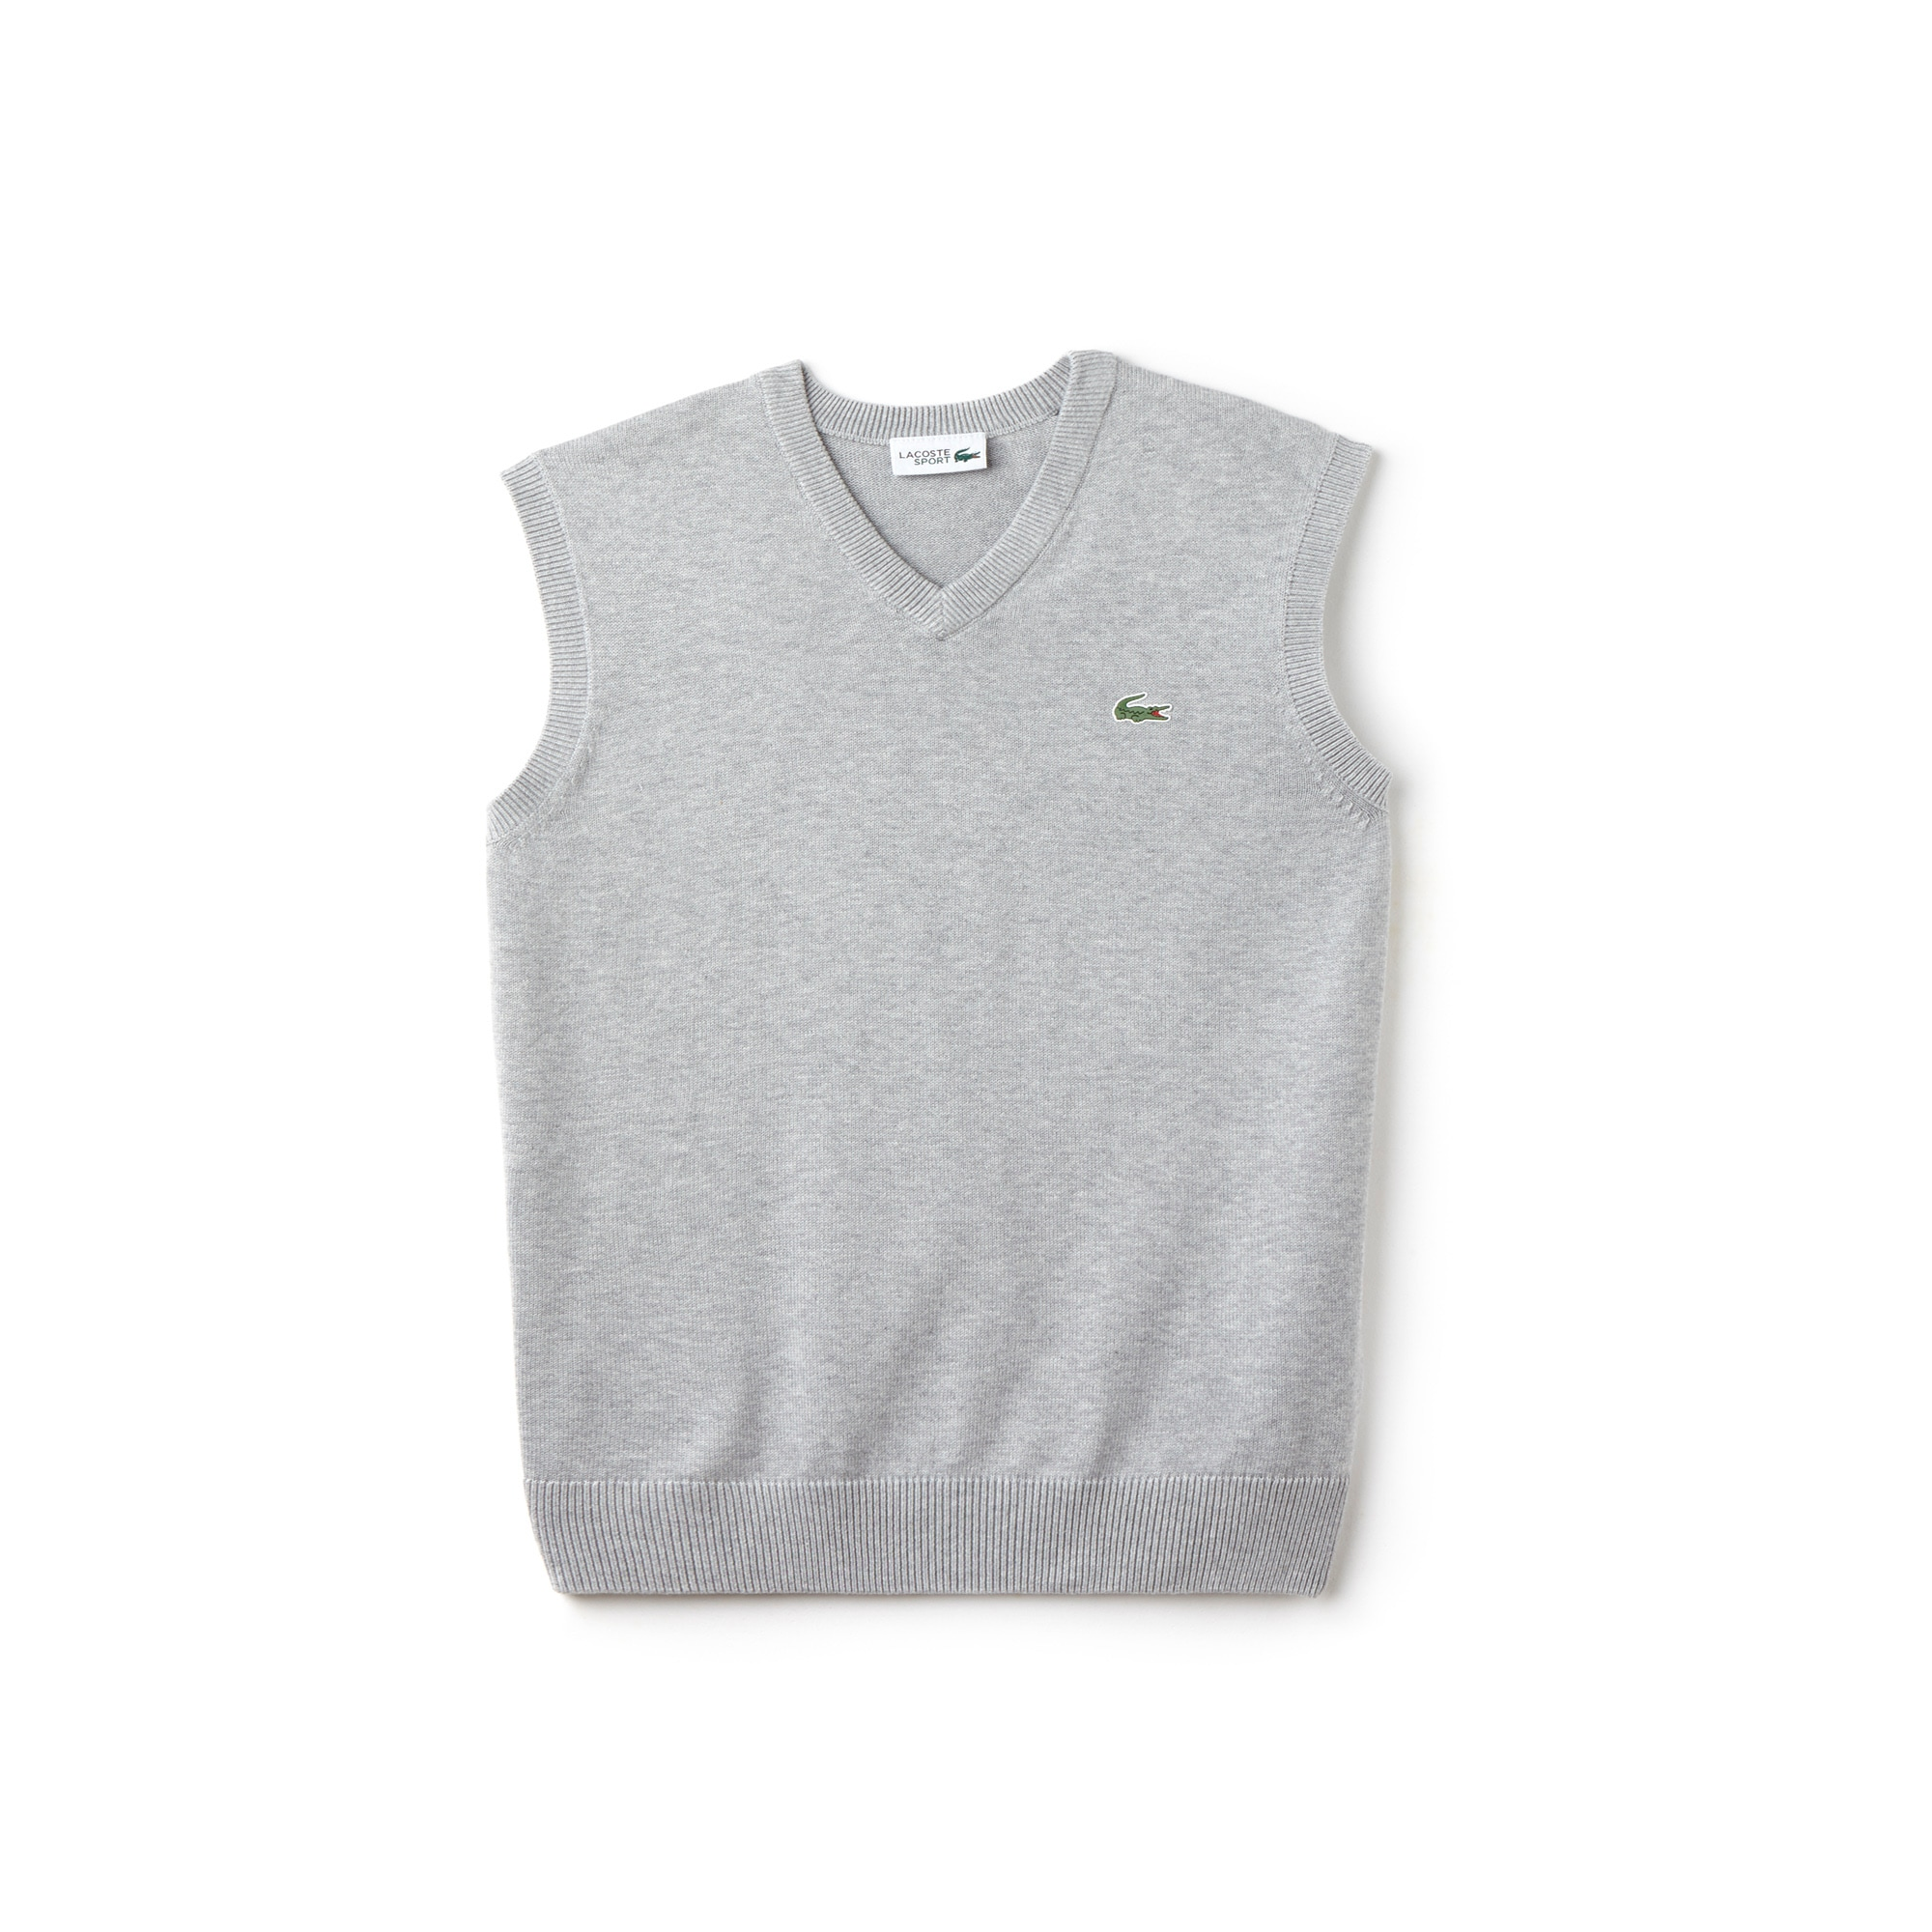 Men's Lacoste SPORT V-Neck Jersey Sweater